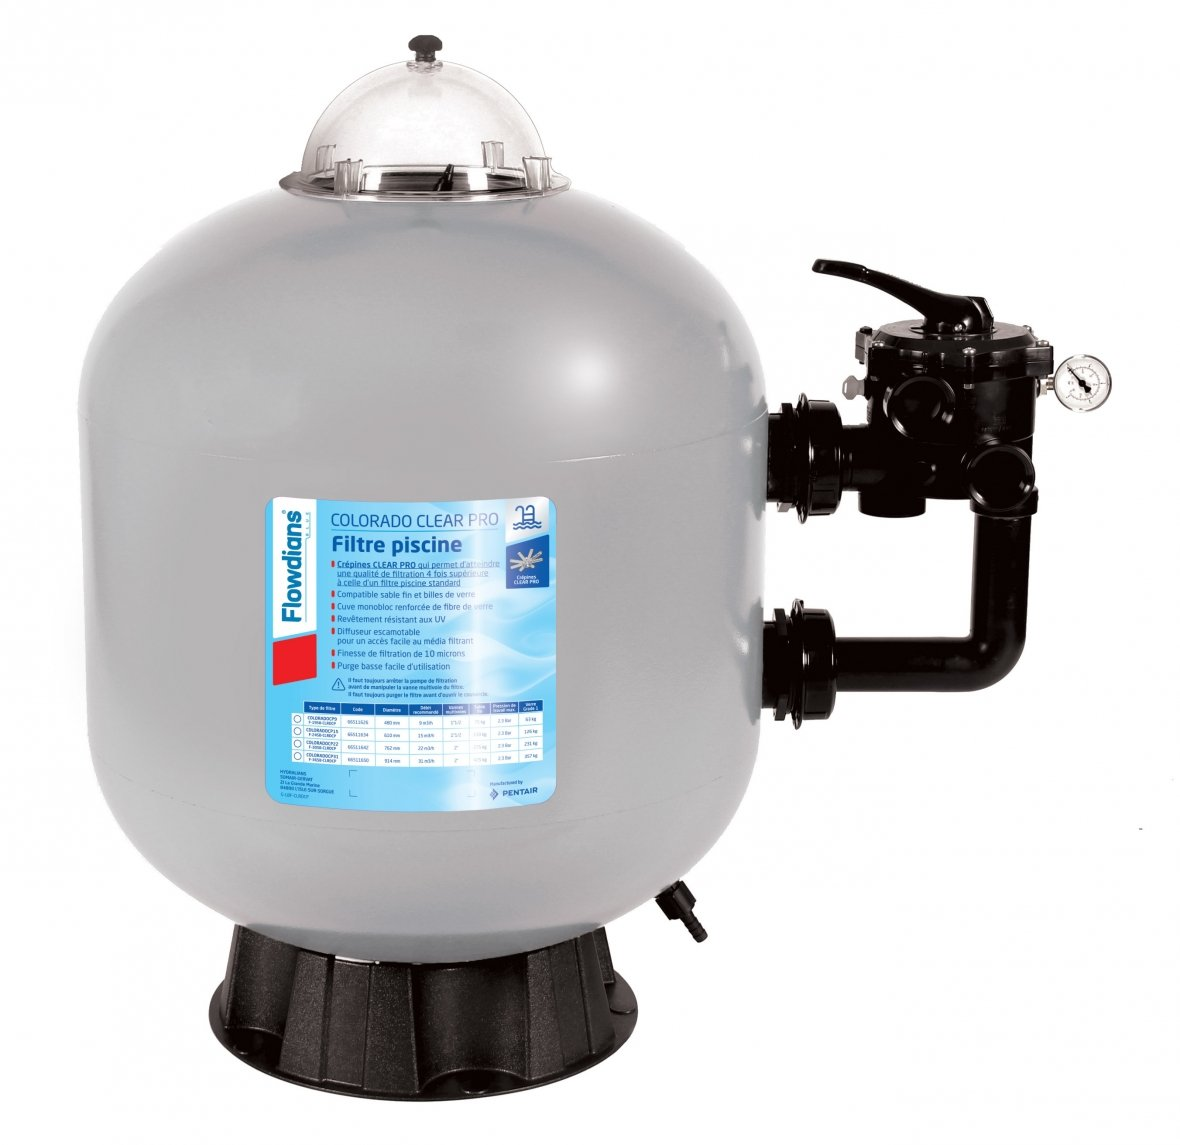 Colorado Clear Pro sand filter - 22m³/h